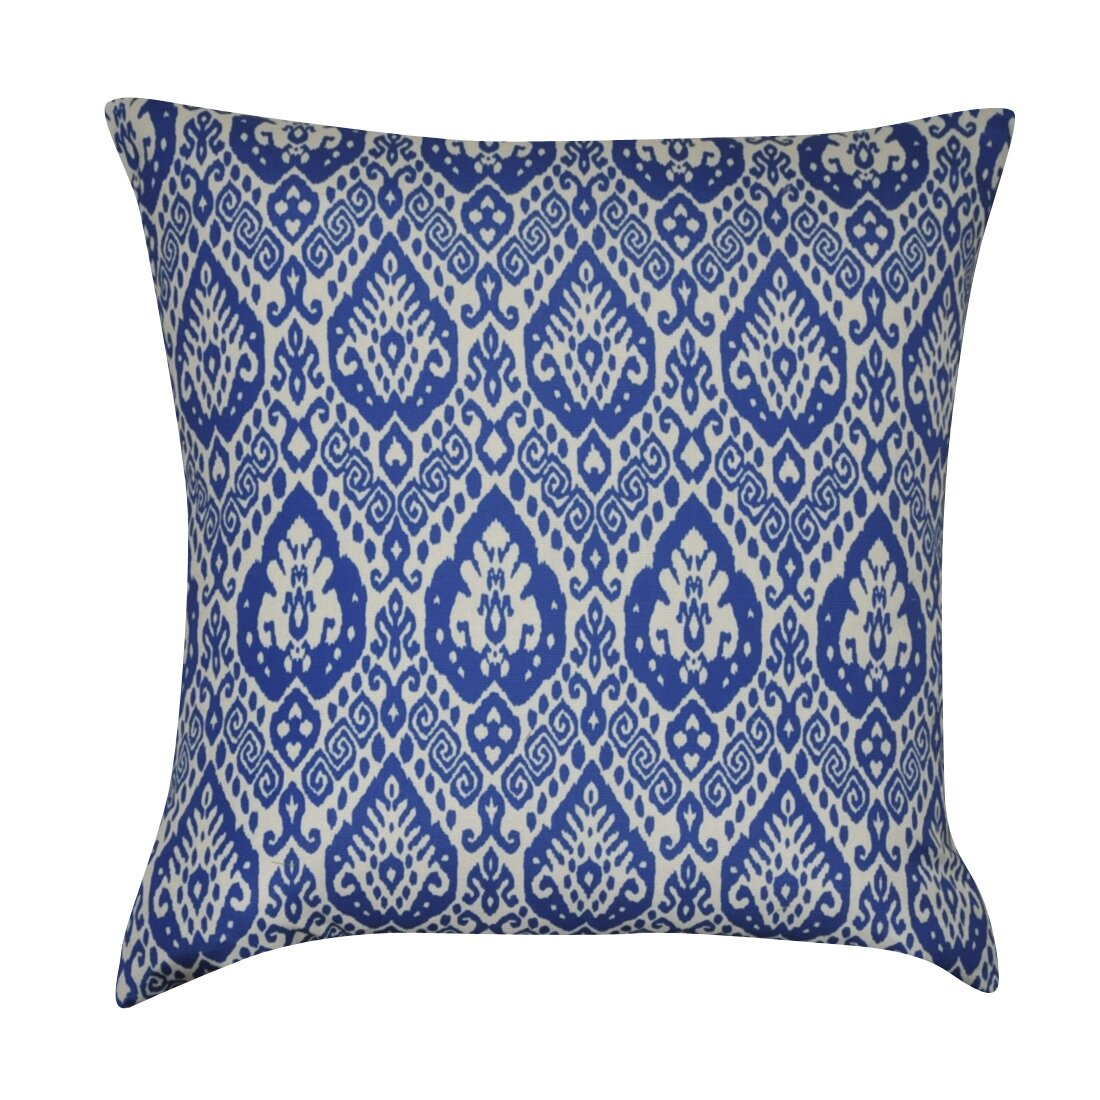 Throw Pillows Damask : Loom and Mill Damask Decorative Throw Pillow & Reviews Wayfair